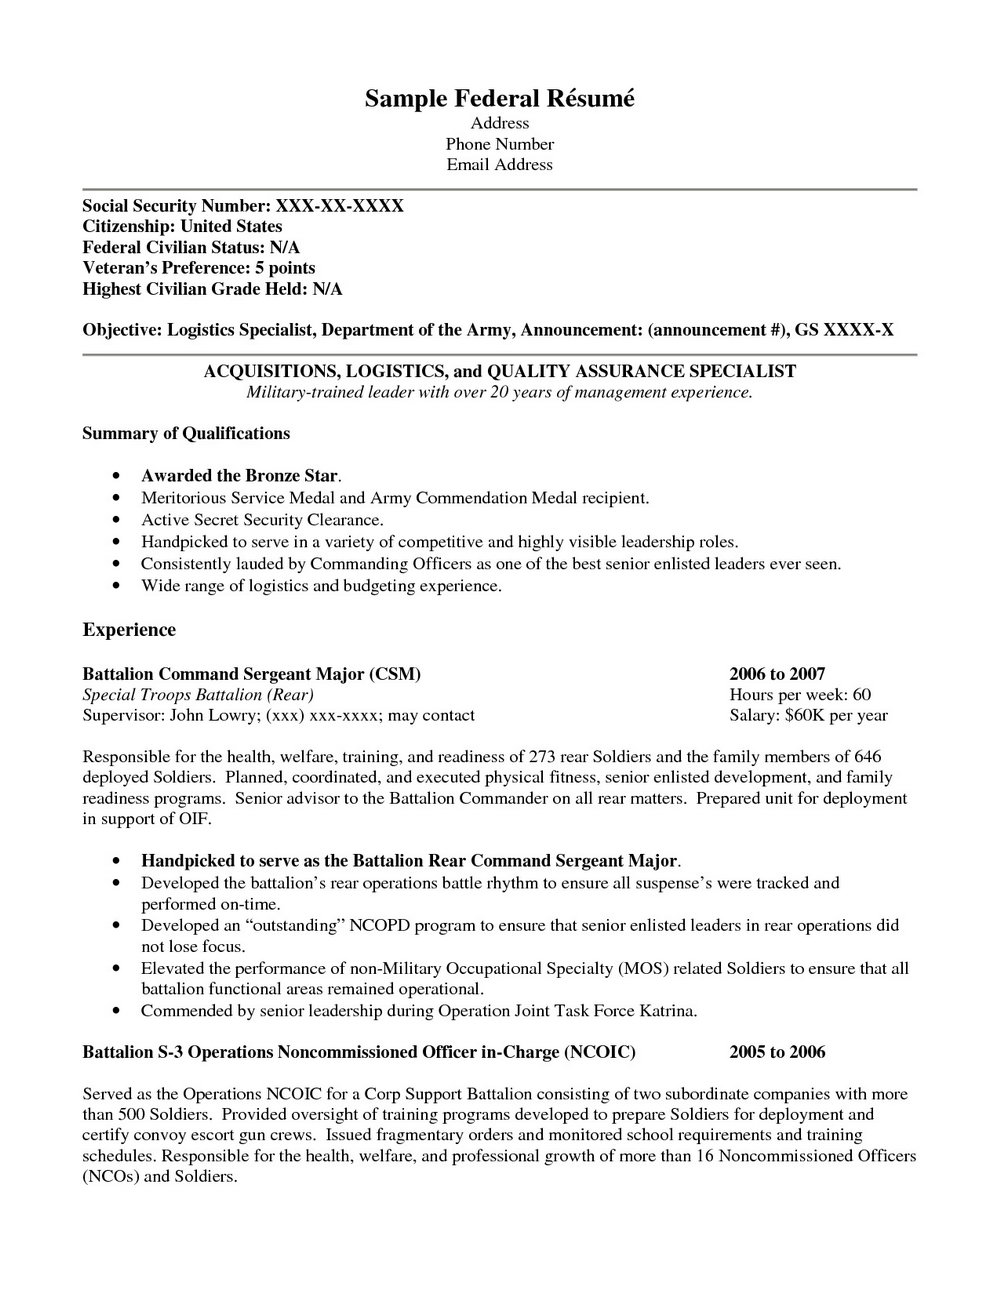 Resume Writing Help For Veterans